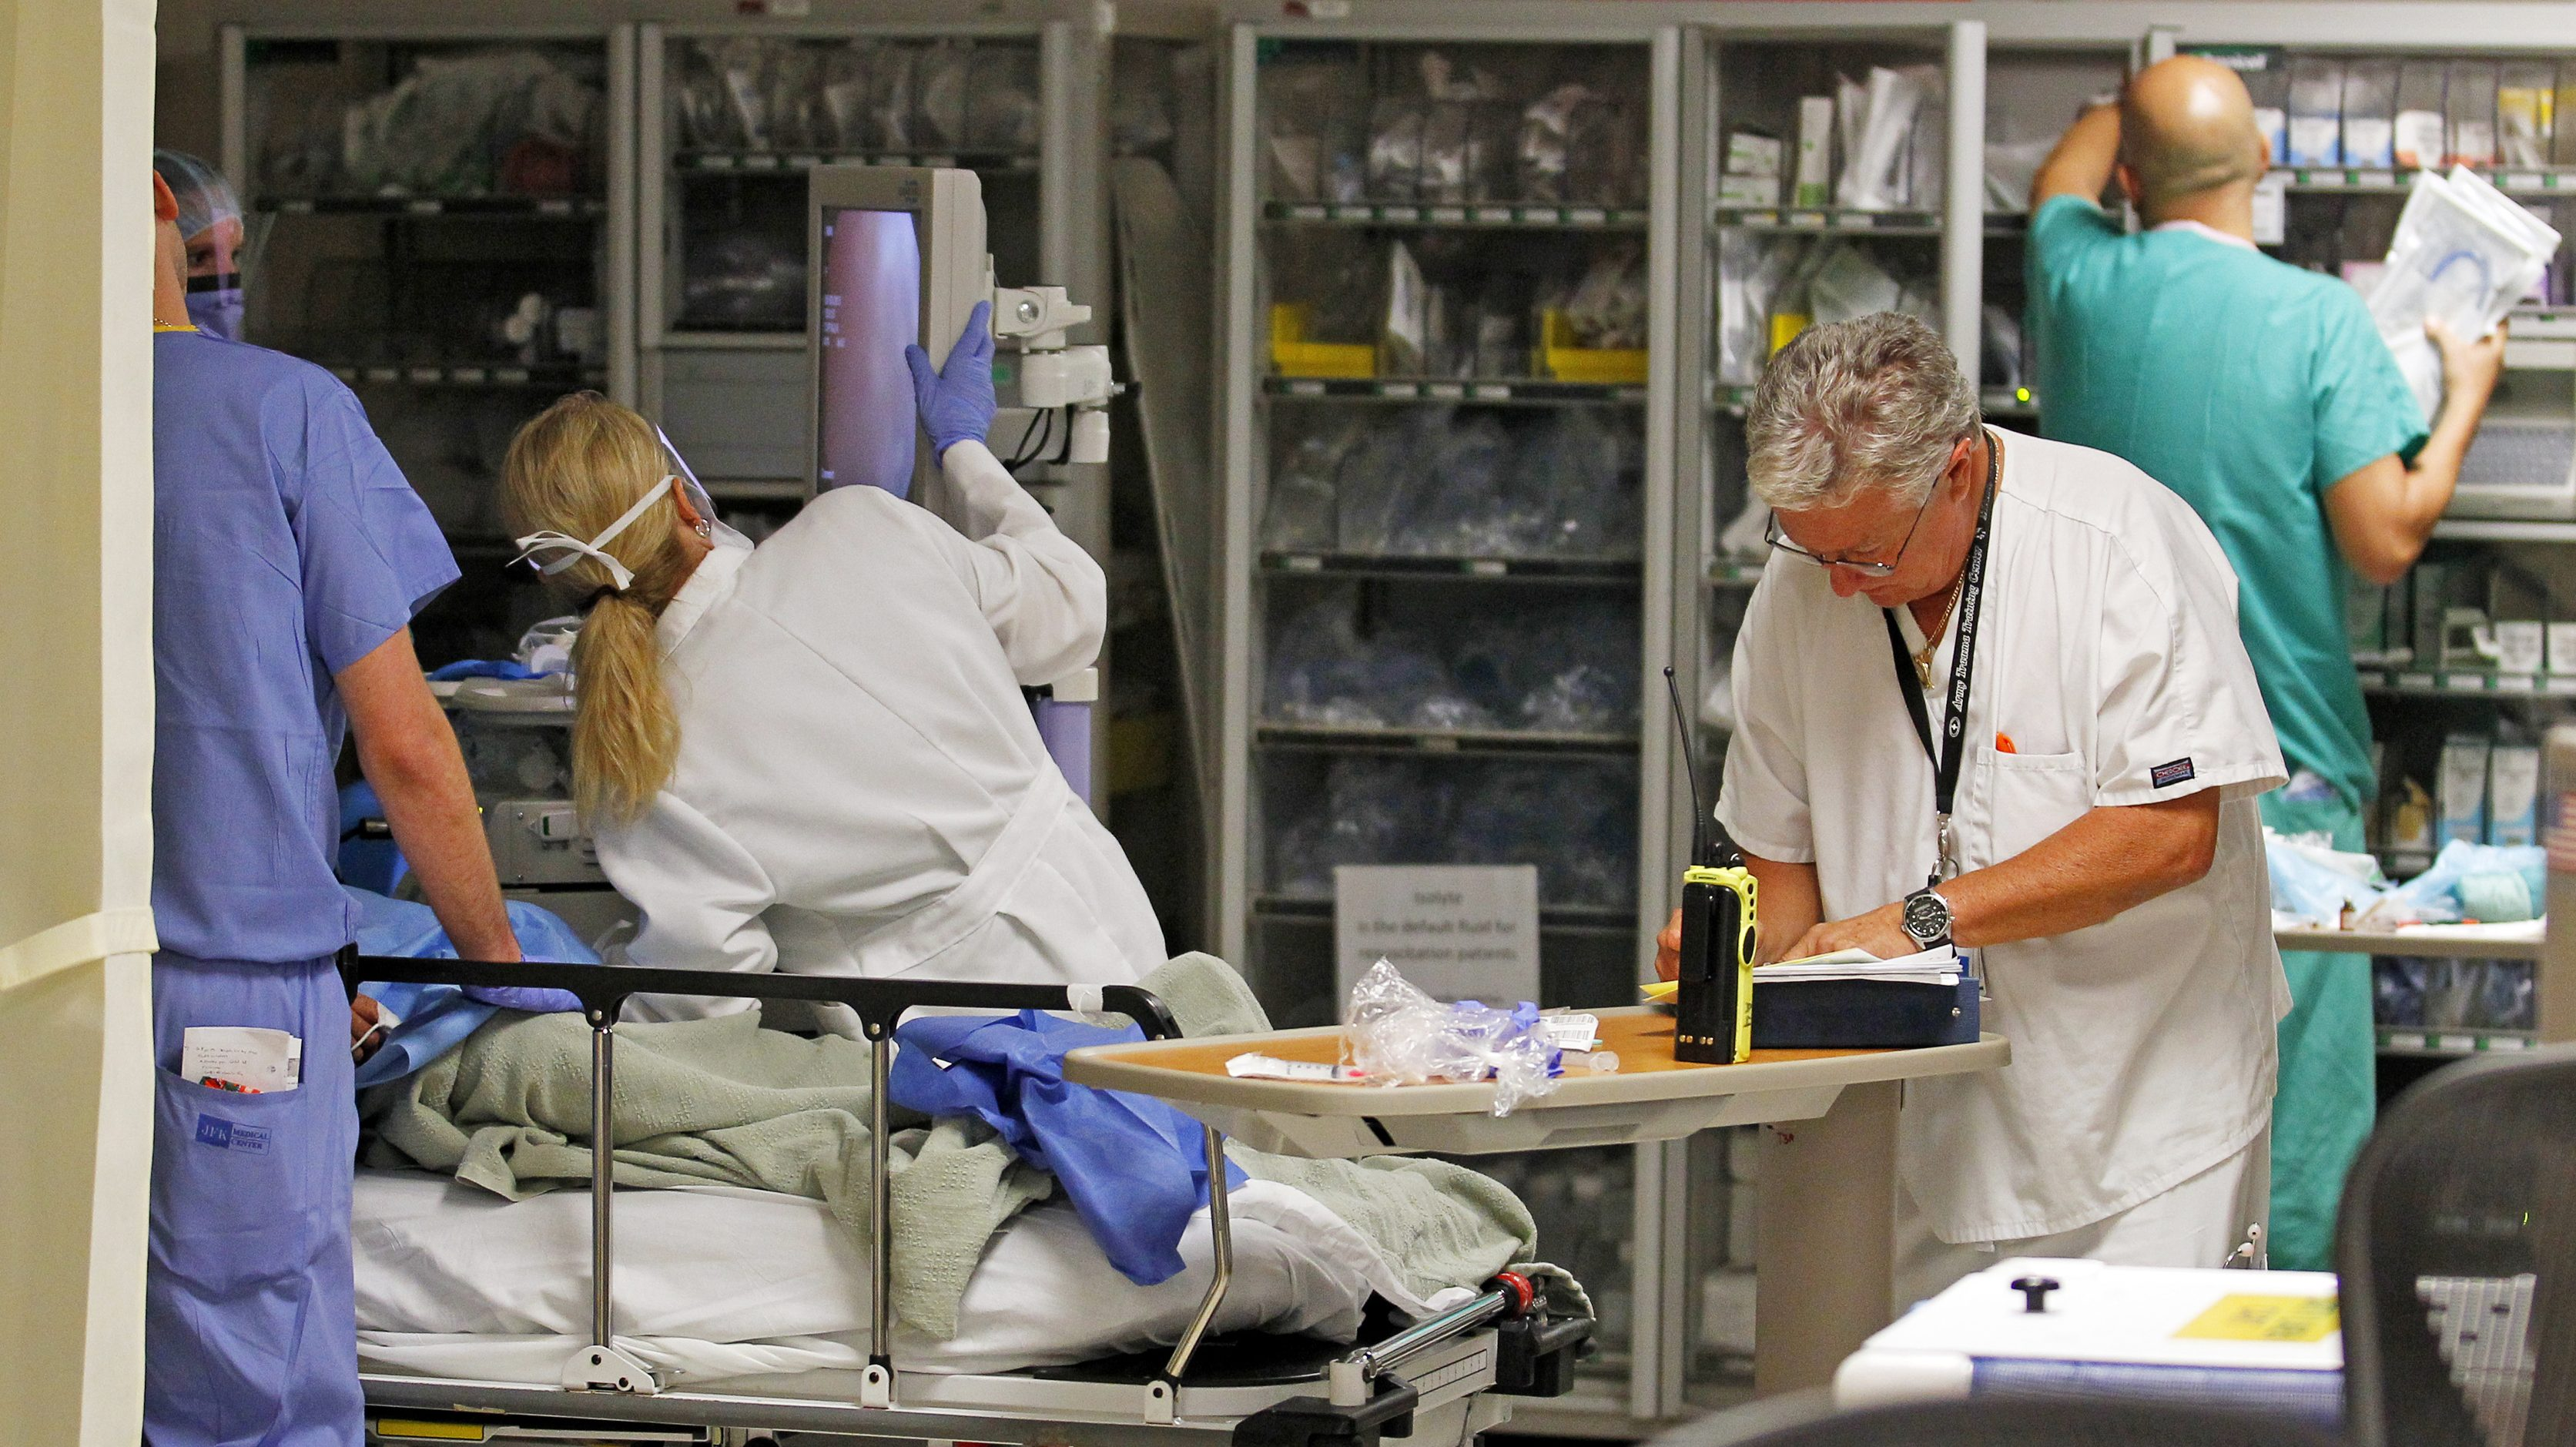 Doctors and nurses work on a patient in the Ryder Trauma Center at Jackson Memorial Hospital in Miami